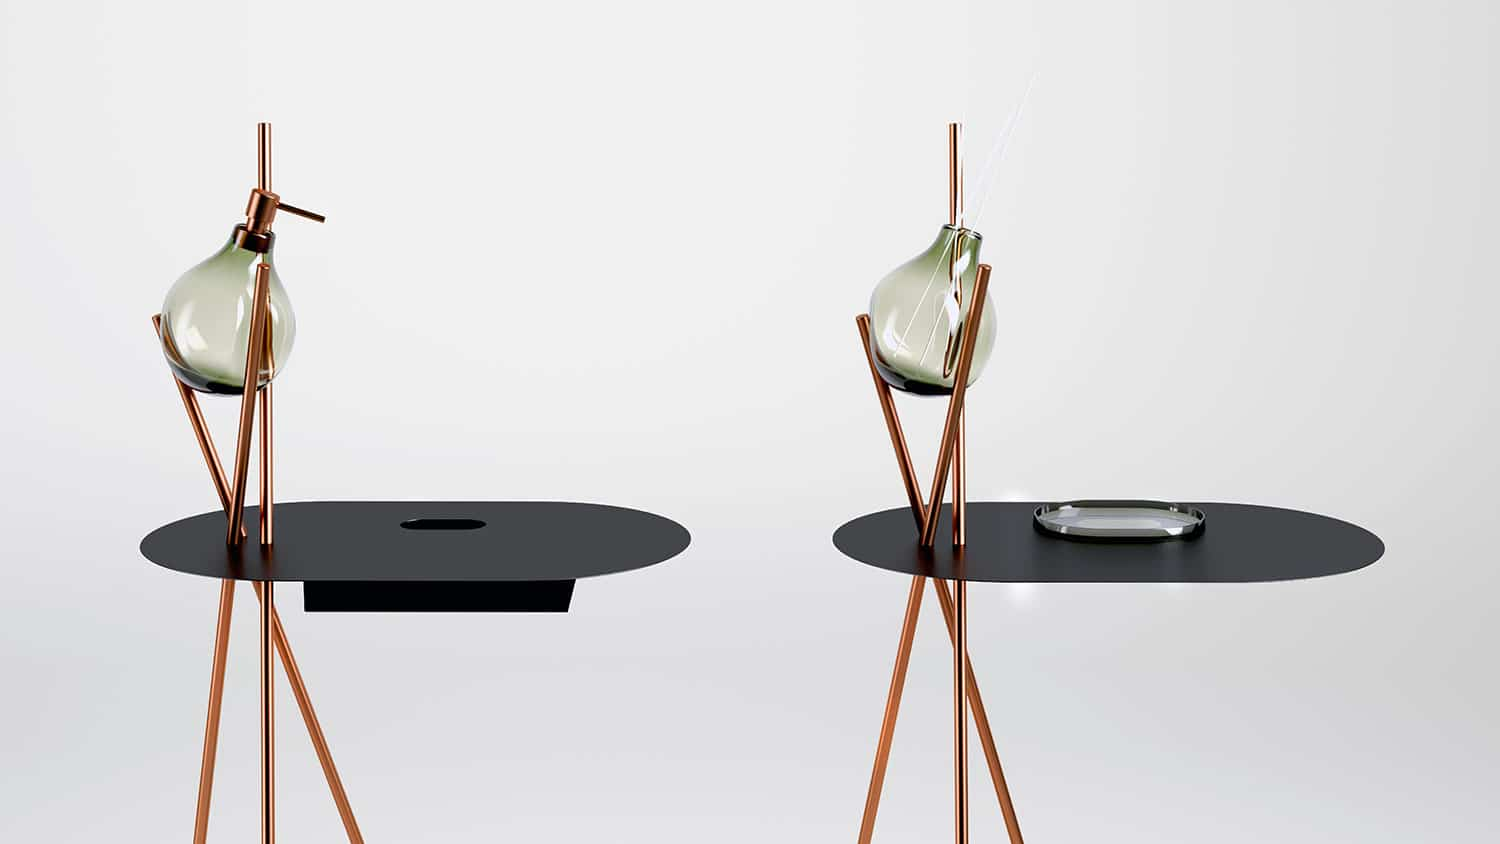 Shangai Irregular Collection by Paratico Design